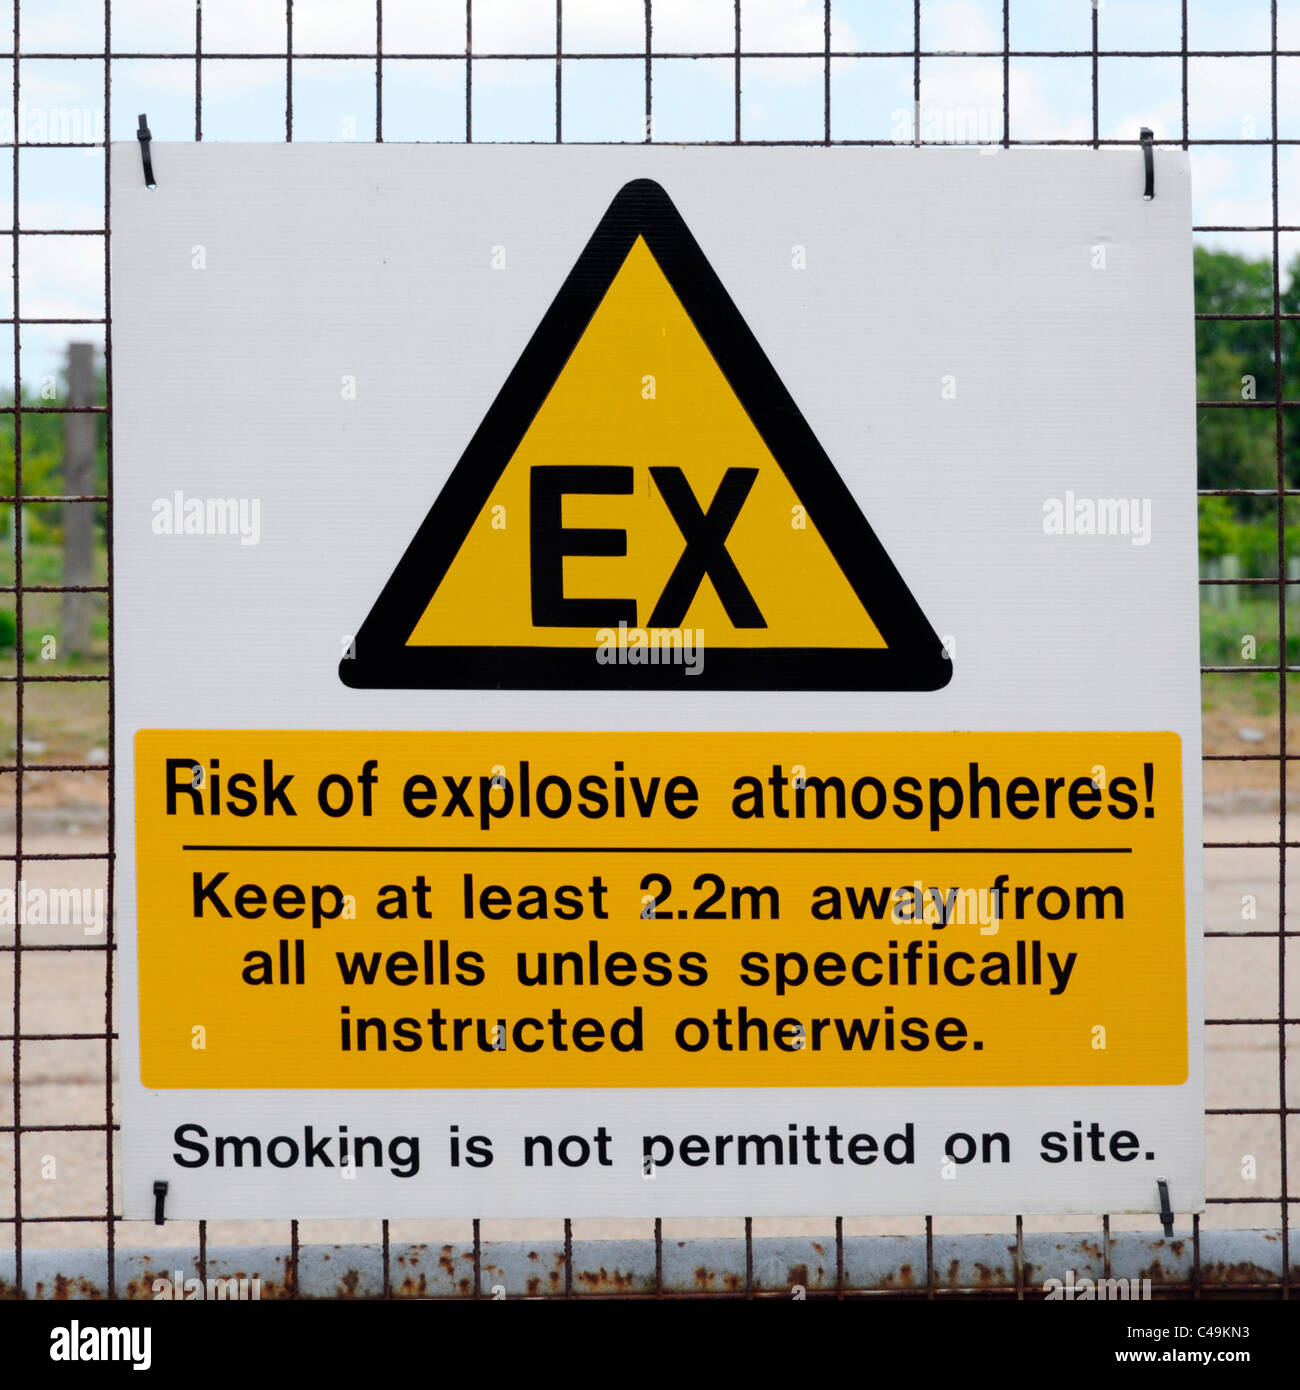 Explosive atmosphere warning signs on gates of closed landfill site - Stock Image